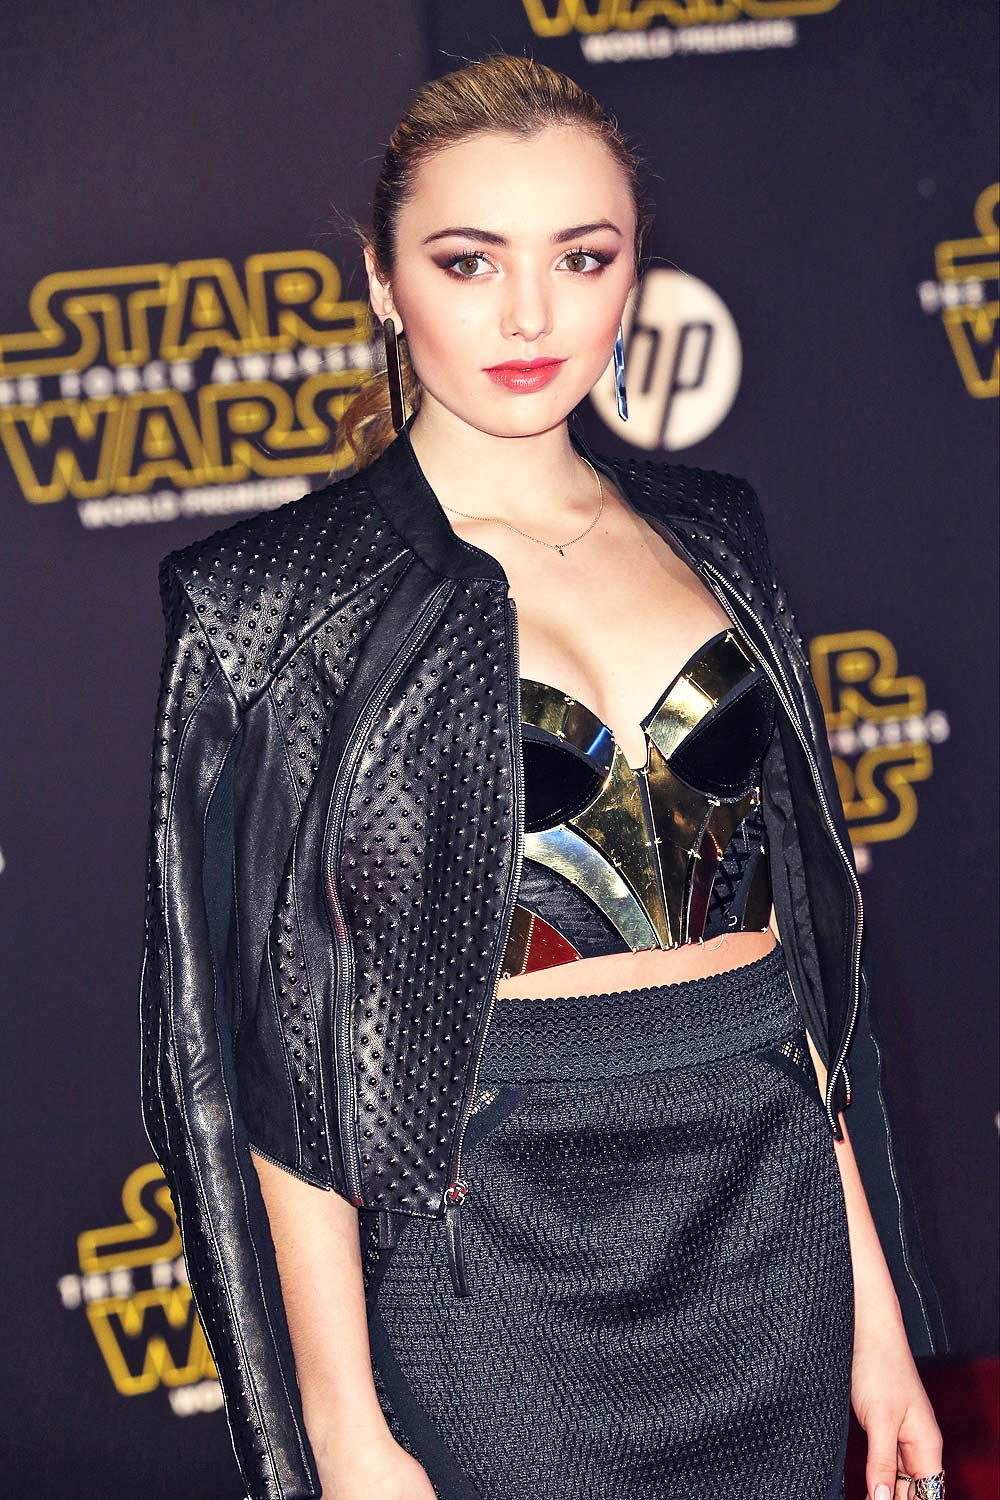 Peyton List attends premiere of Star Wars The Force Awakens